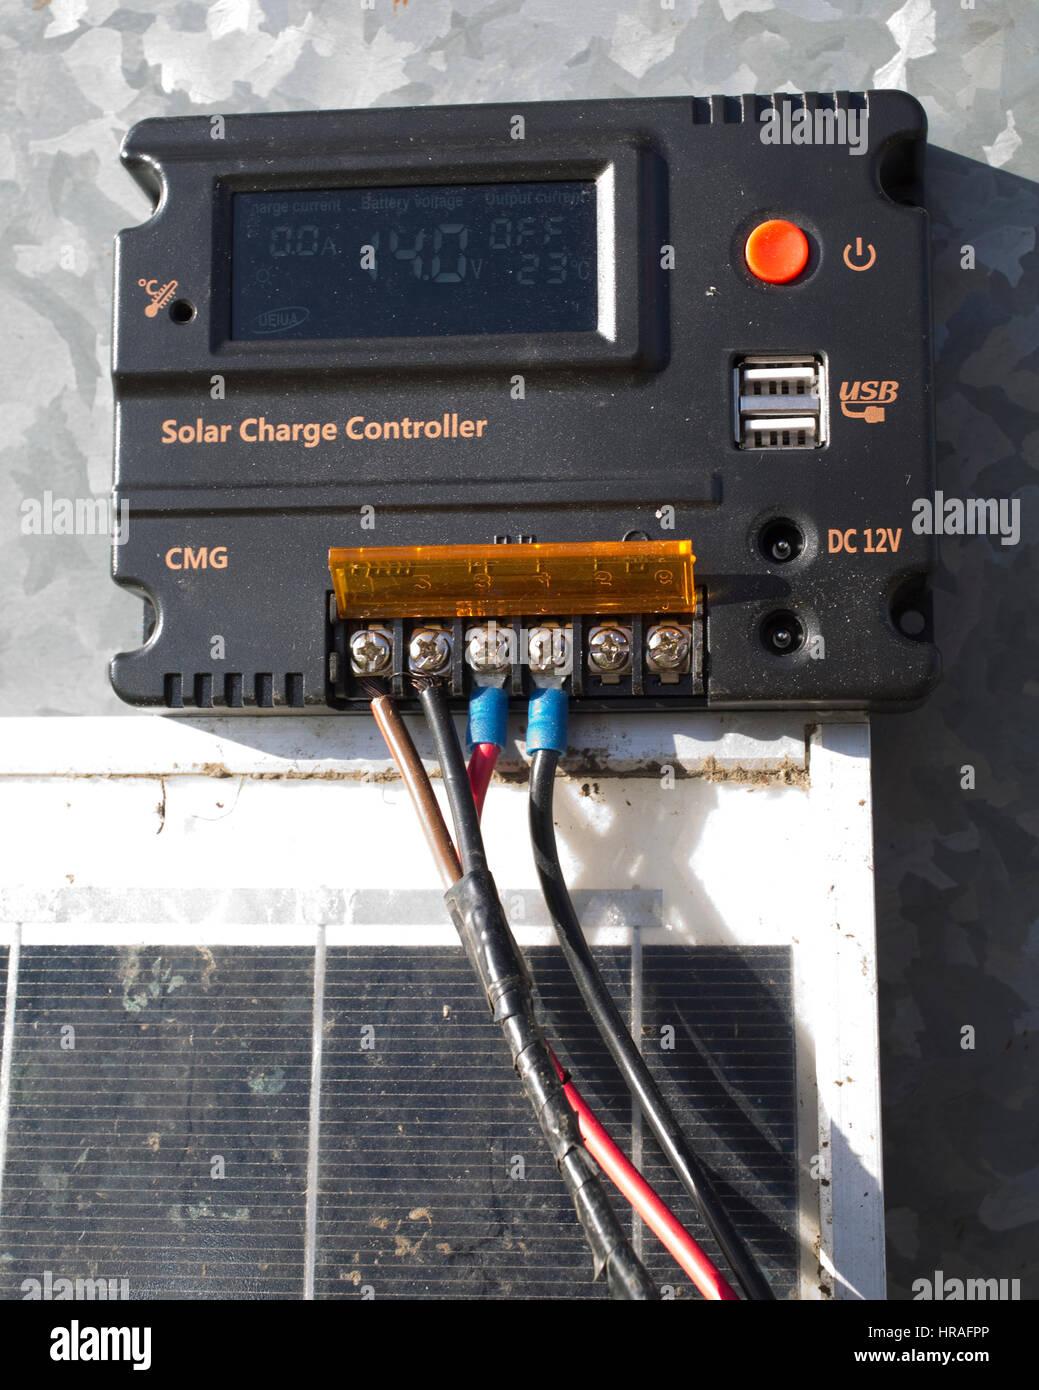 Solar charge controller CMG preventing overcharging of lead acid battery UK - Stock Image